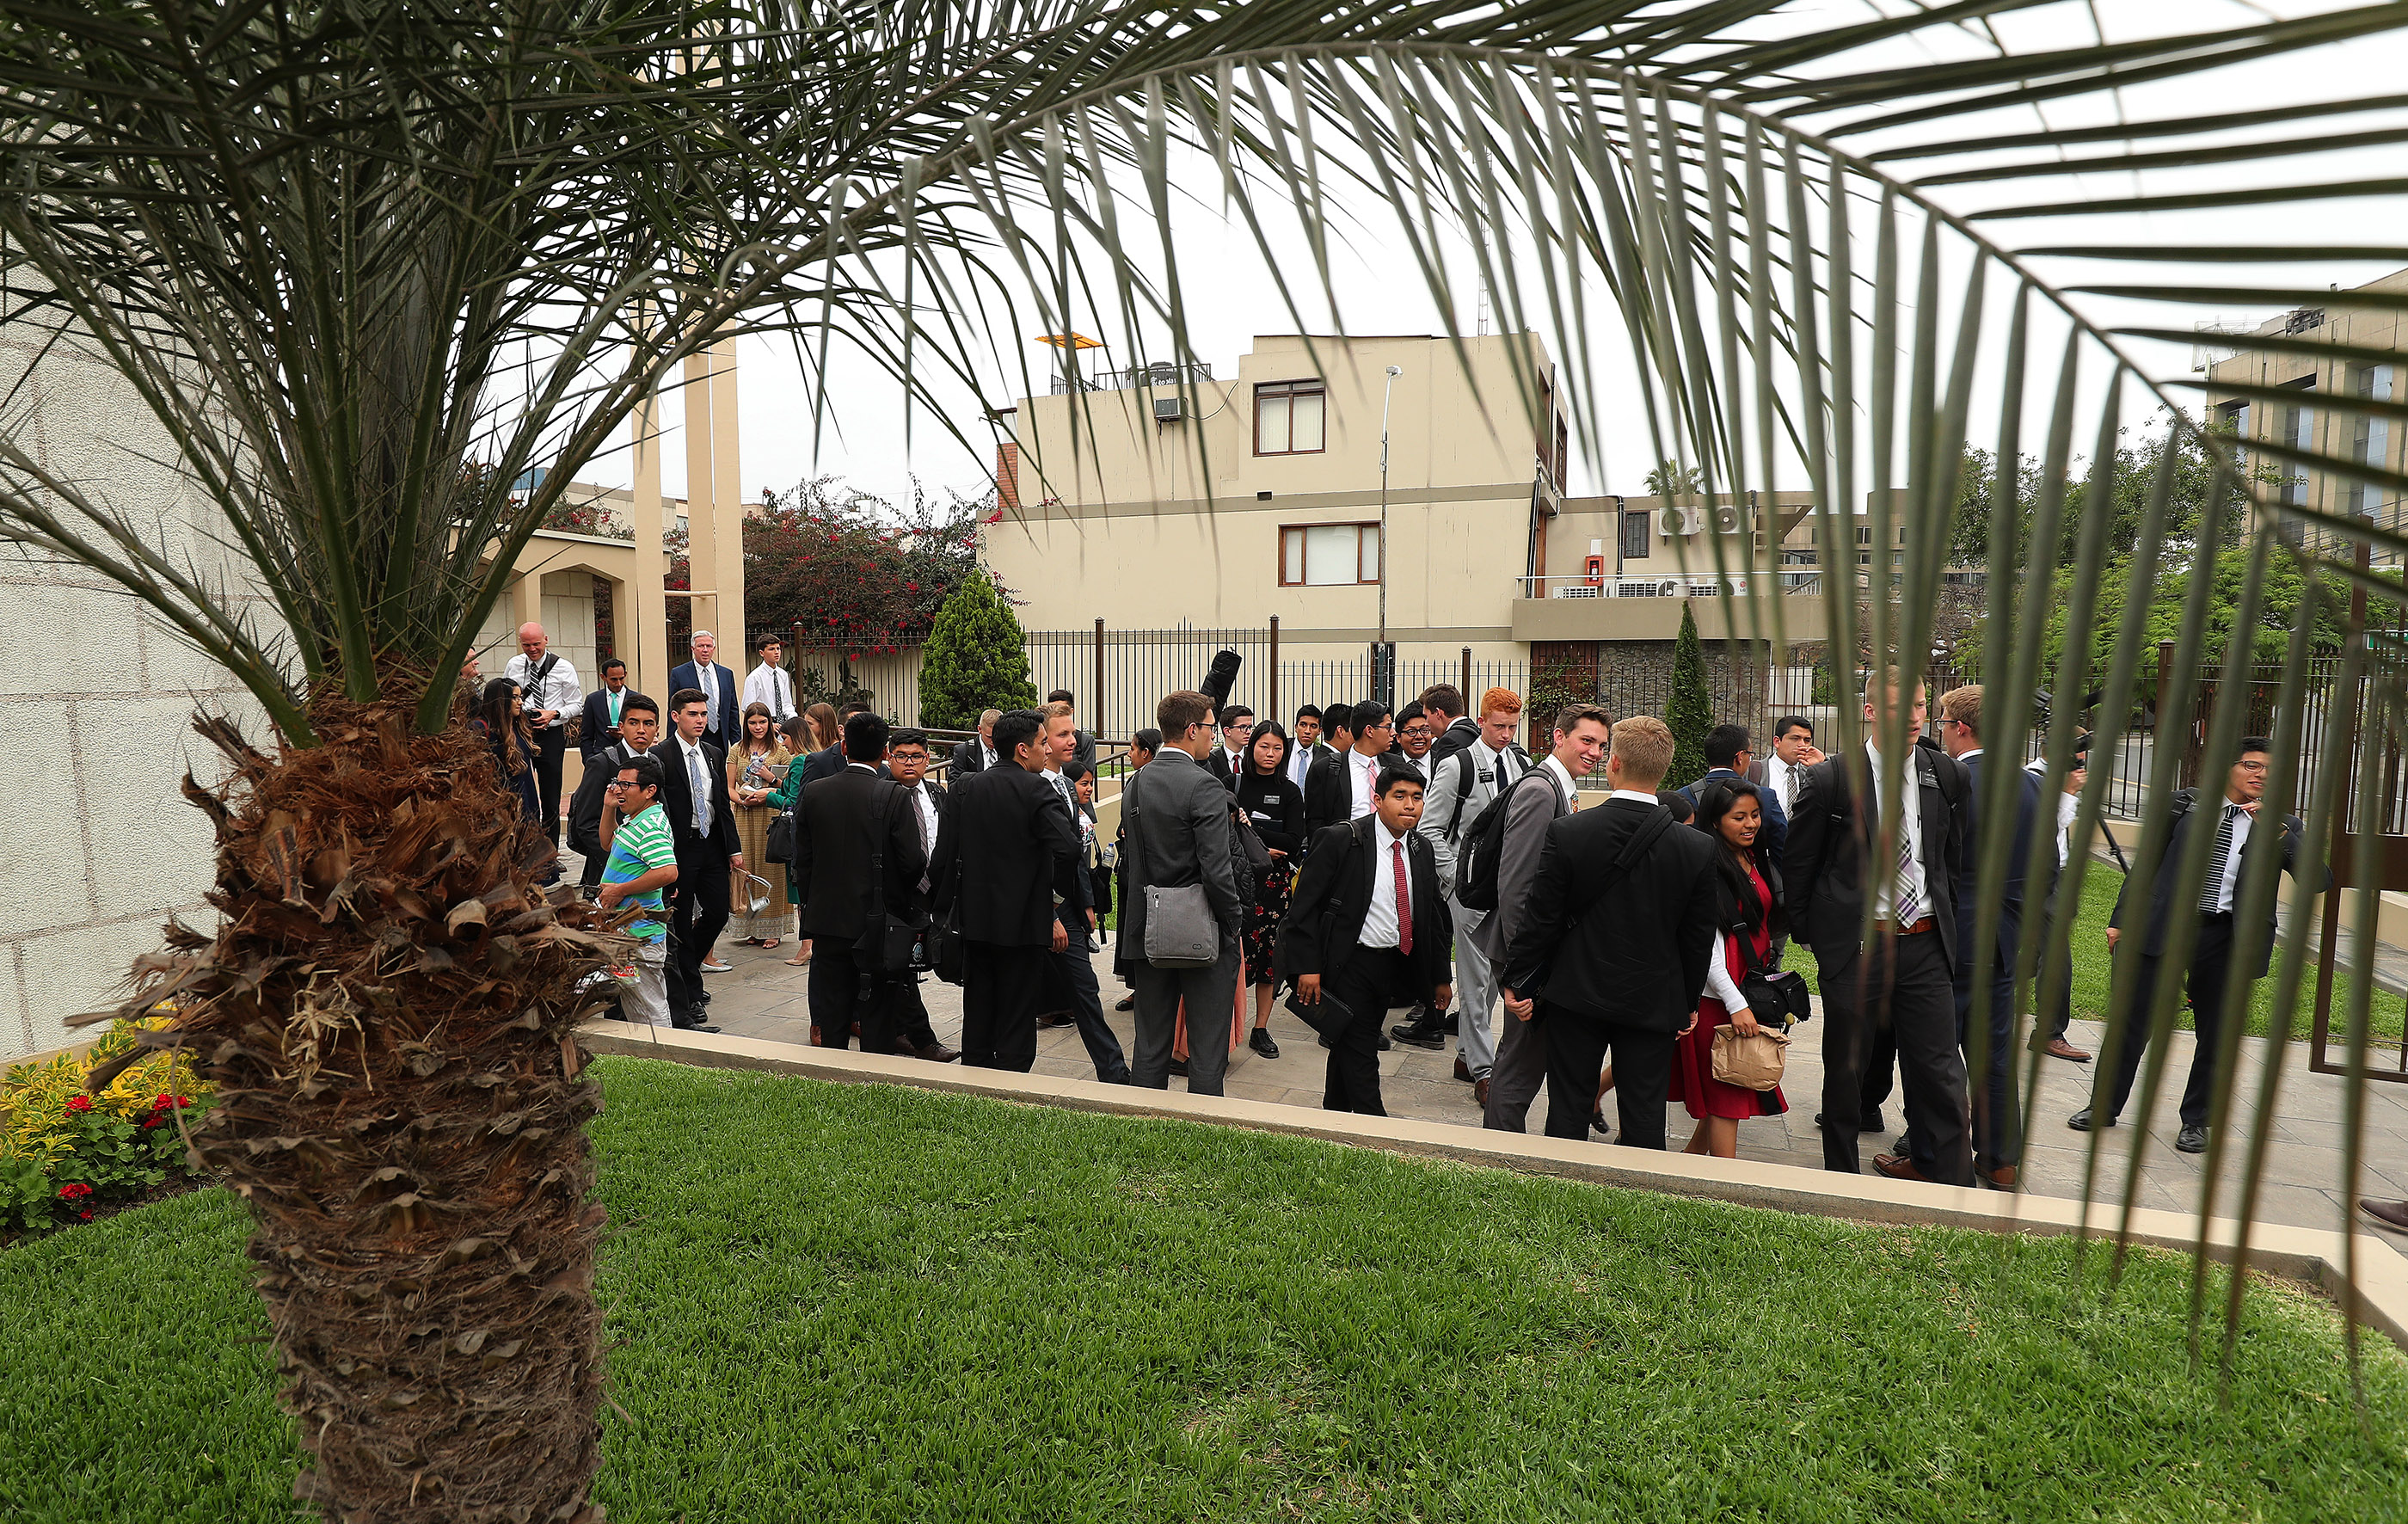 Missionairies leave after a meeting with President Russell M. Nelson of The Church of Jesus Christ of Latter-day Saints in Lima, Peru, on Oct. 20, 2018.